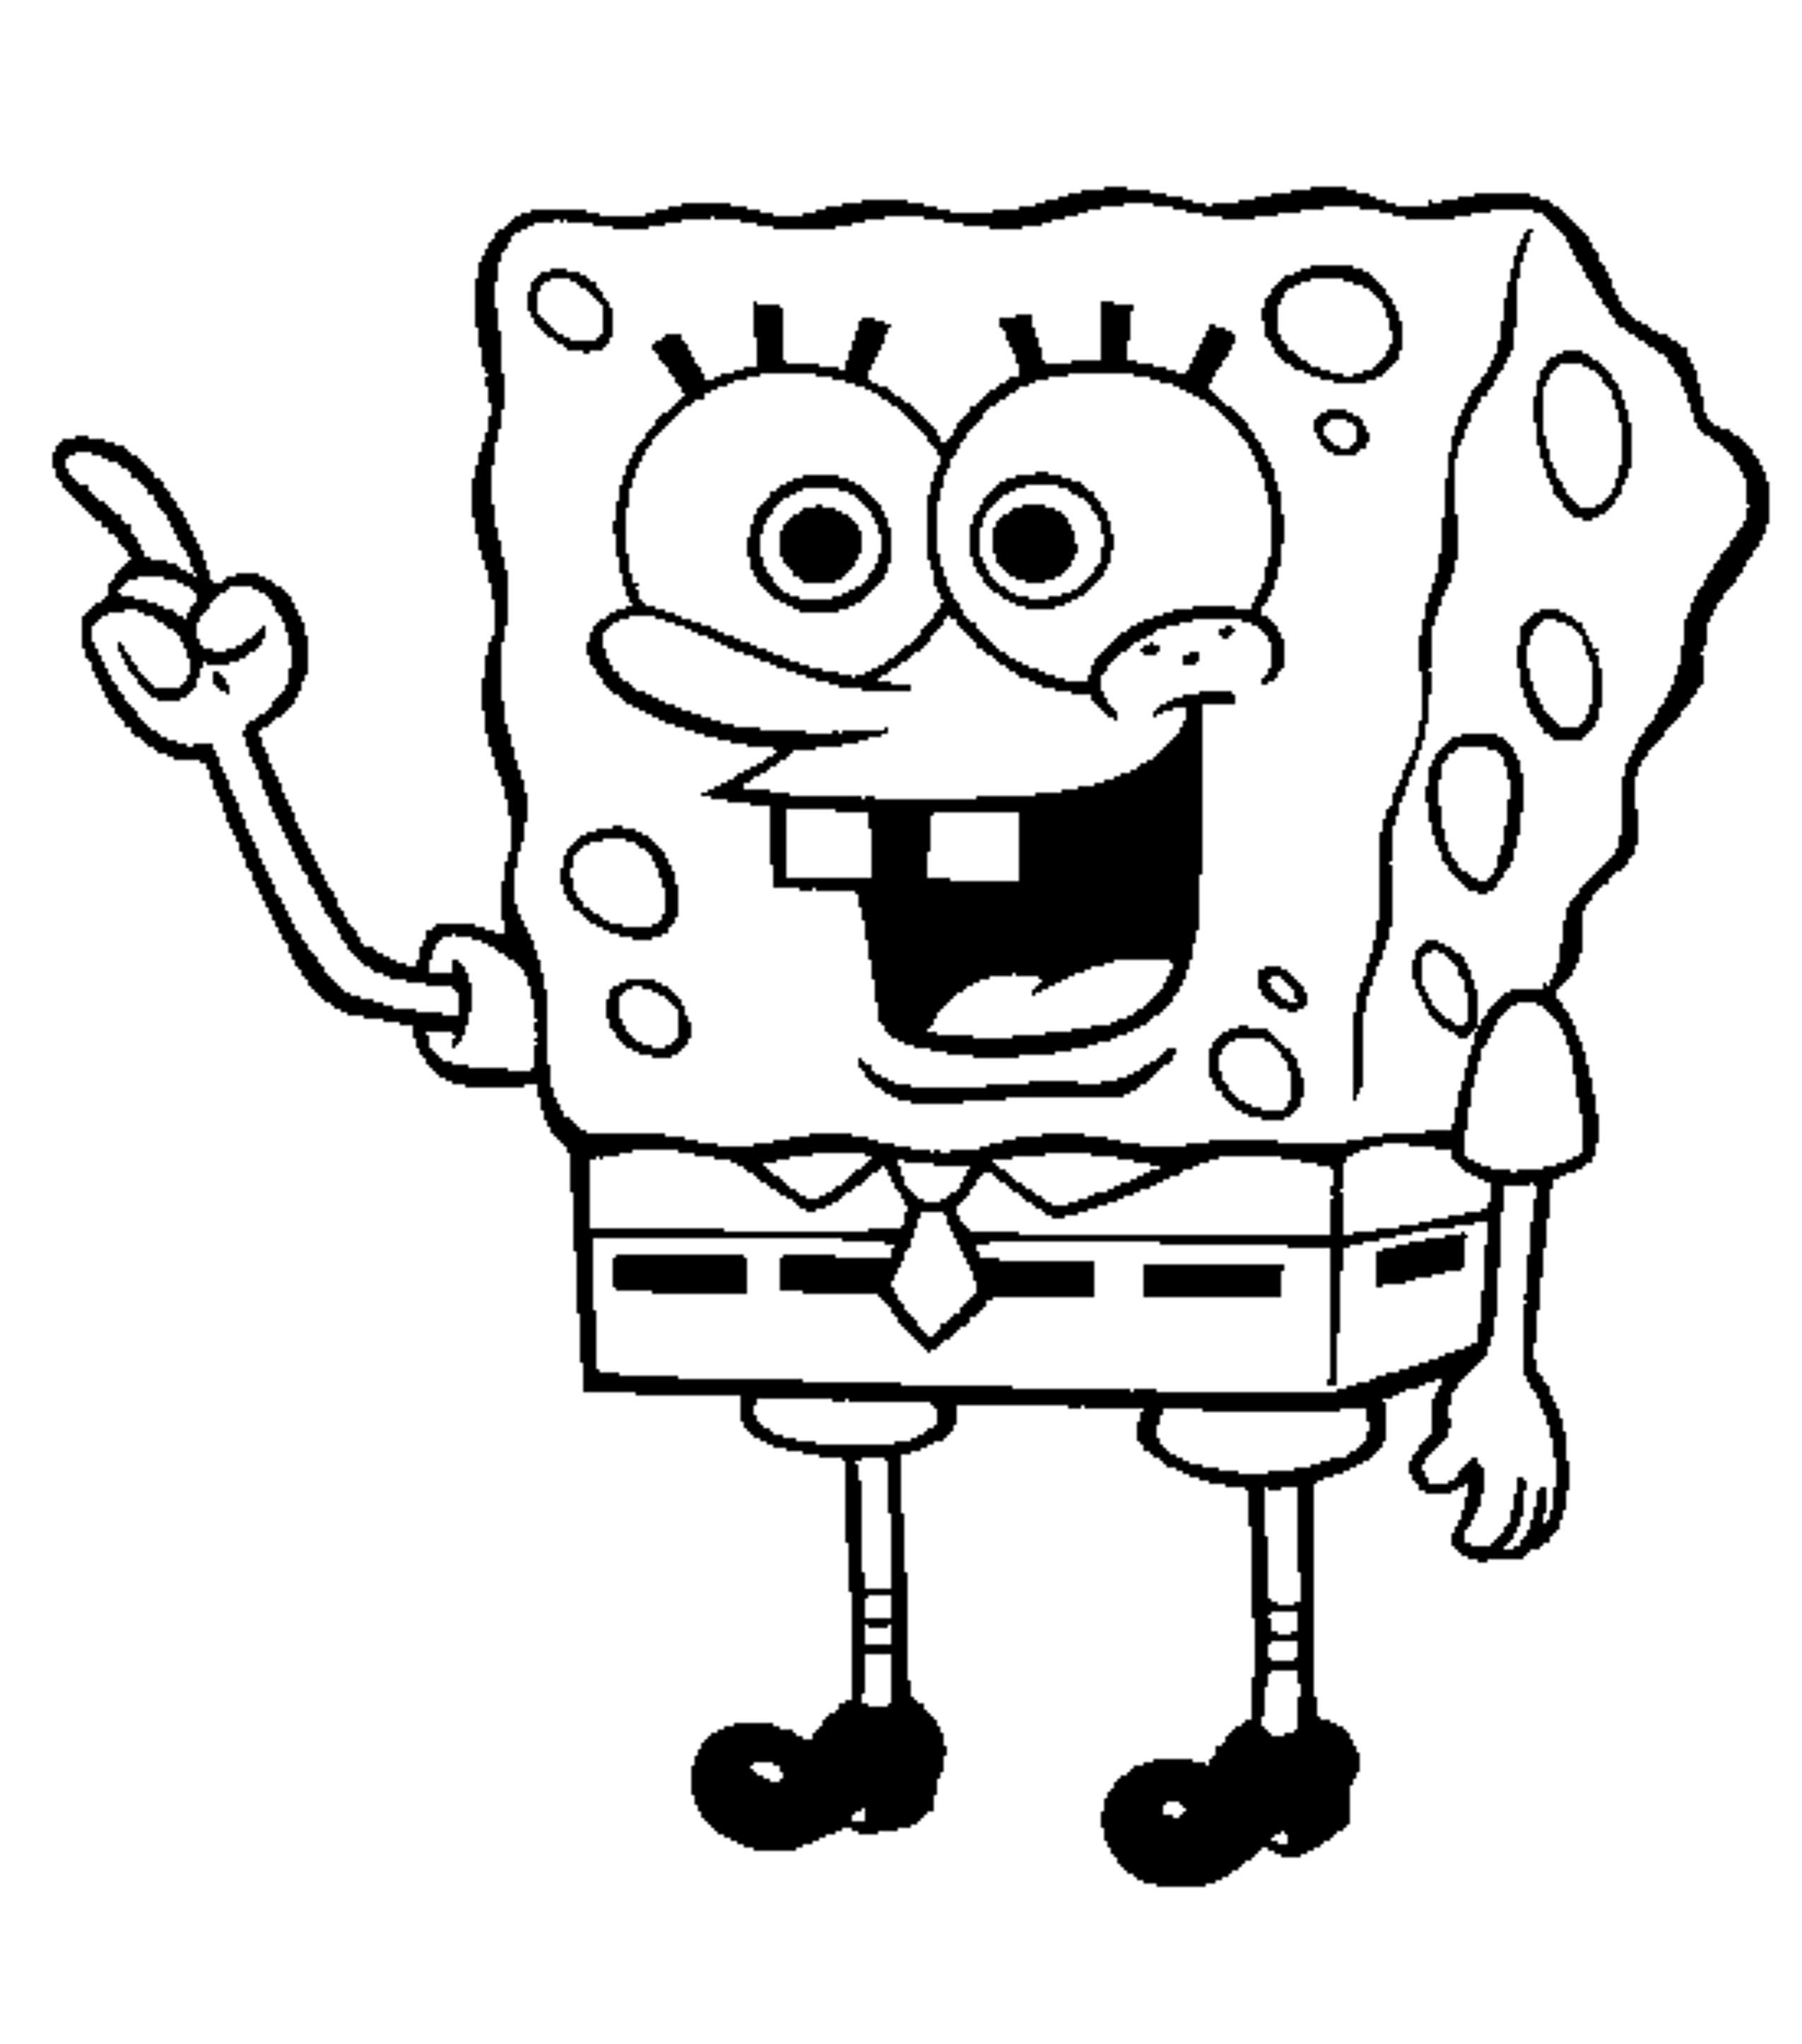 spongebob black and white spongebob squarepants logo png transparent svg vector black white and spongebob